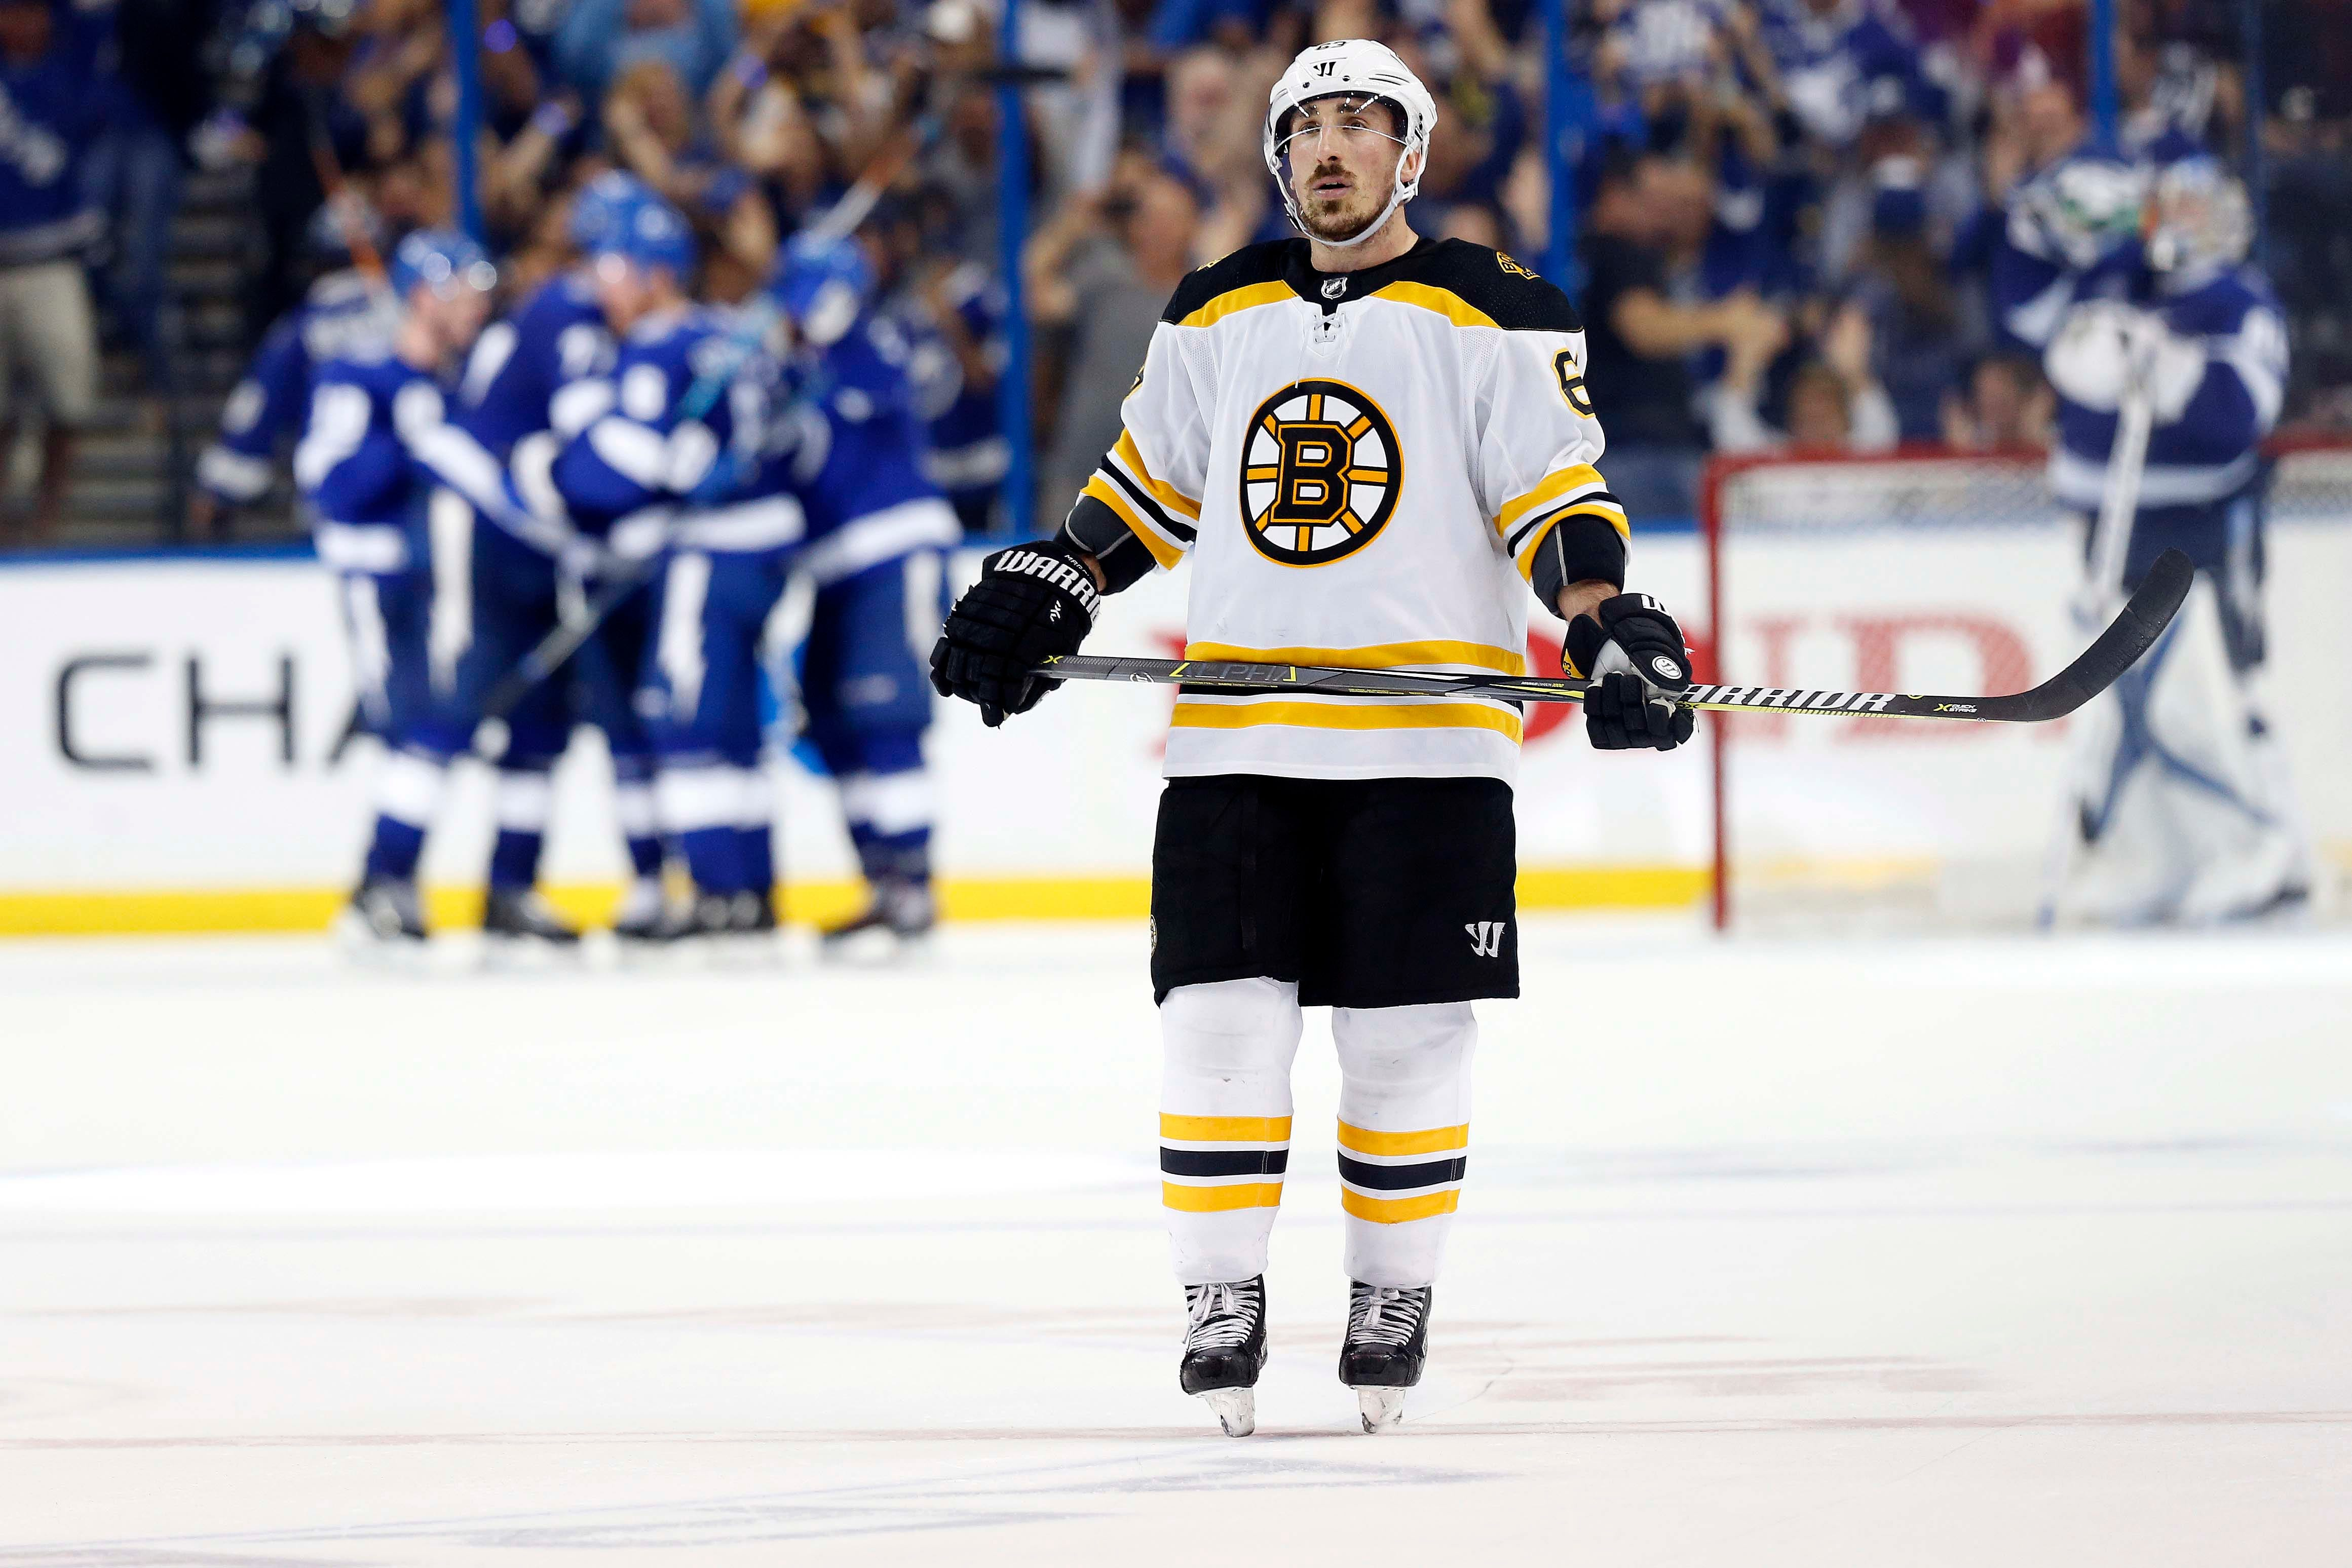 Brad Marchand on NHL's warning him about licking players: 'I think it's pretty stupid'